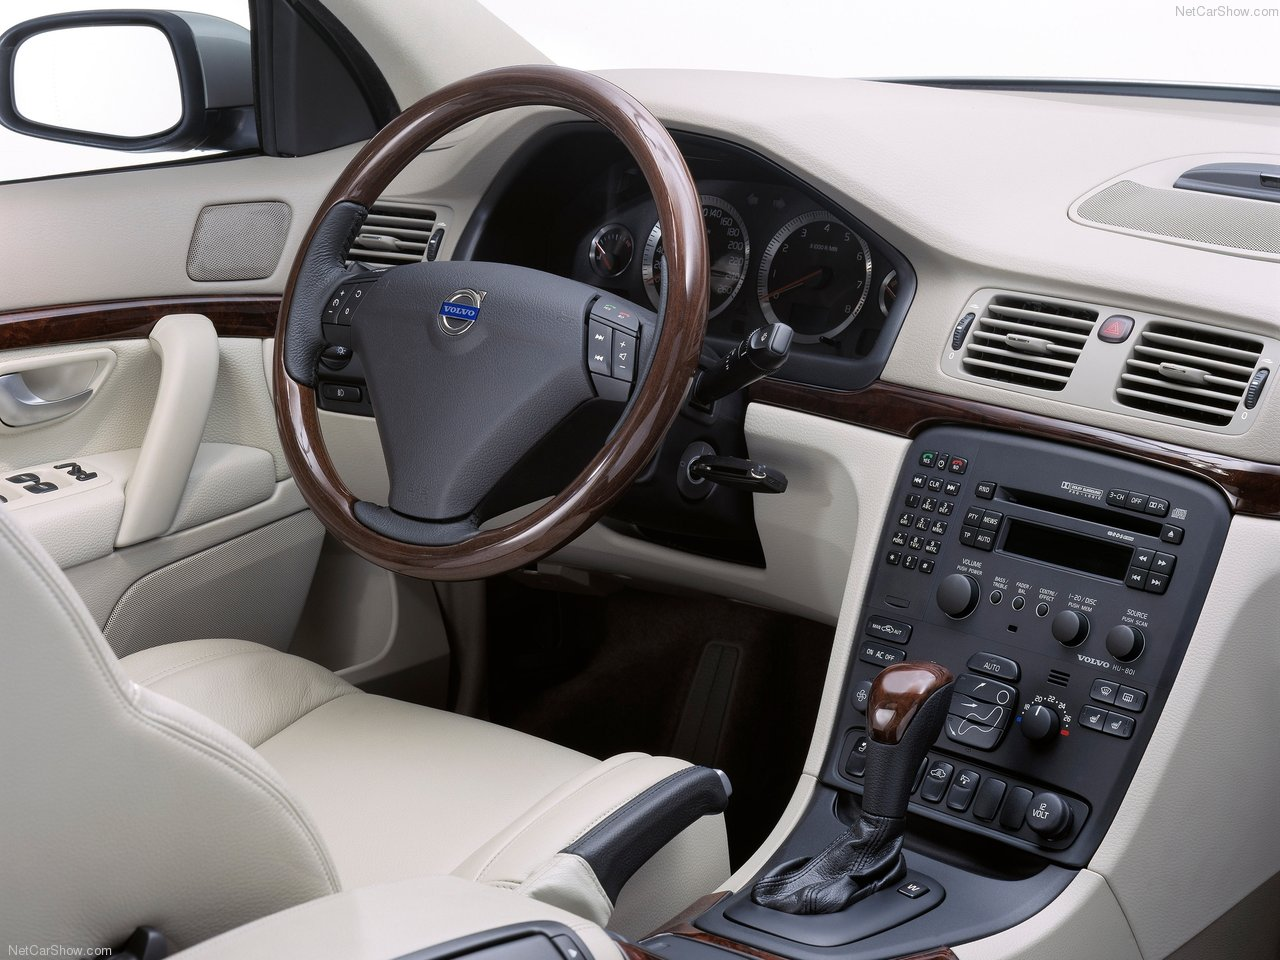 Volvo S Interior on 2000 Volvo S70 White